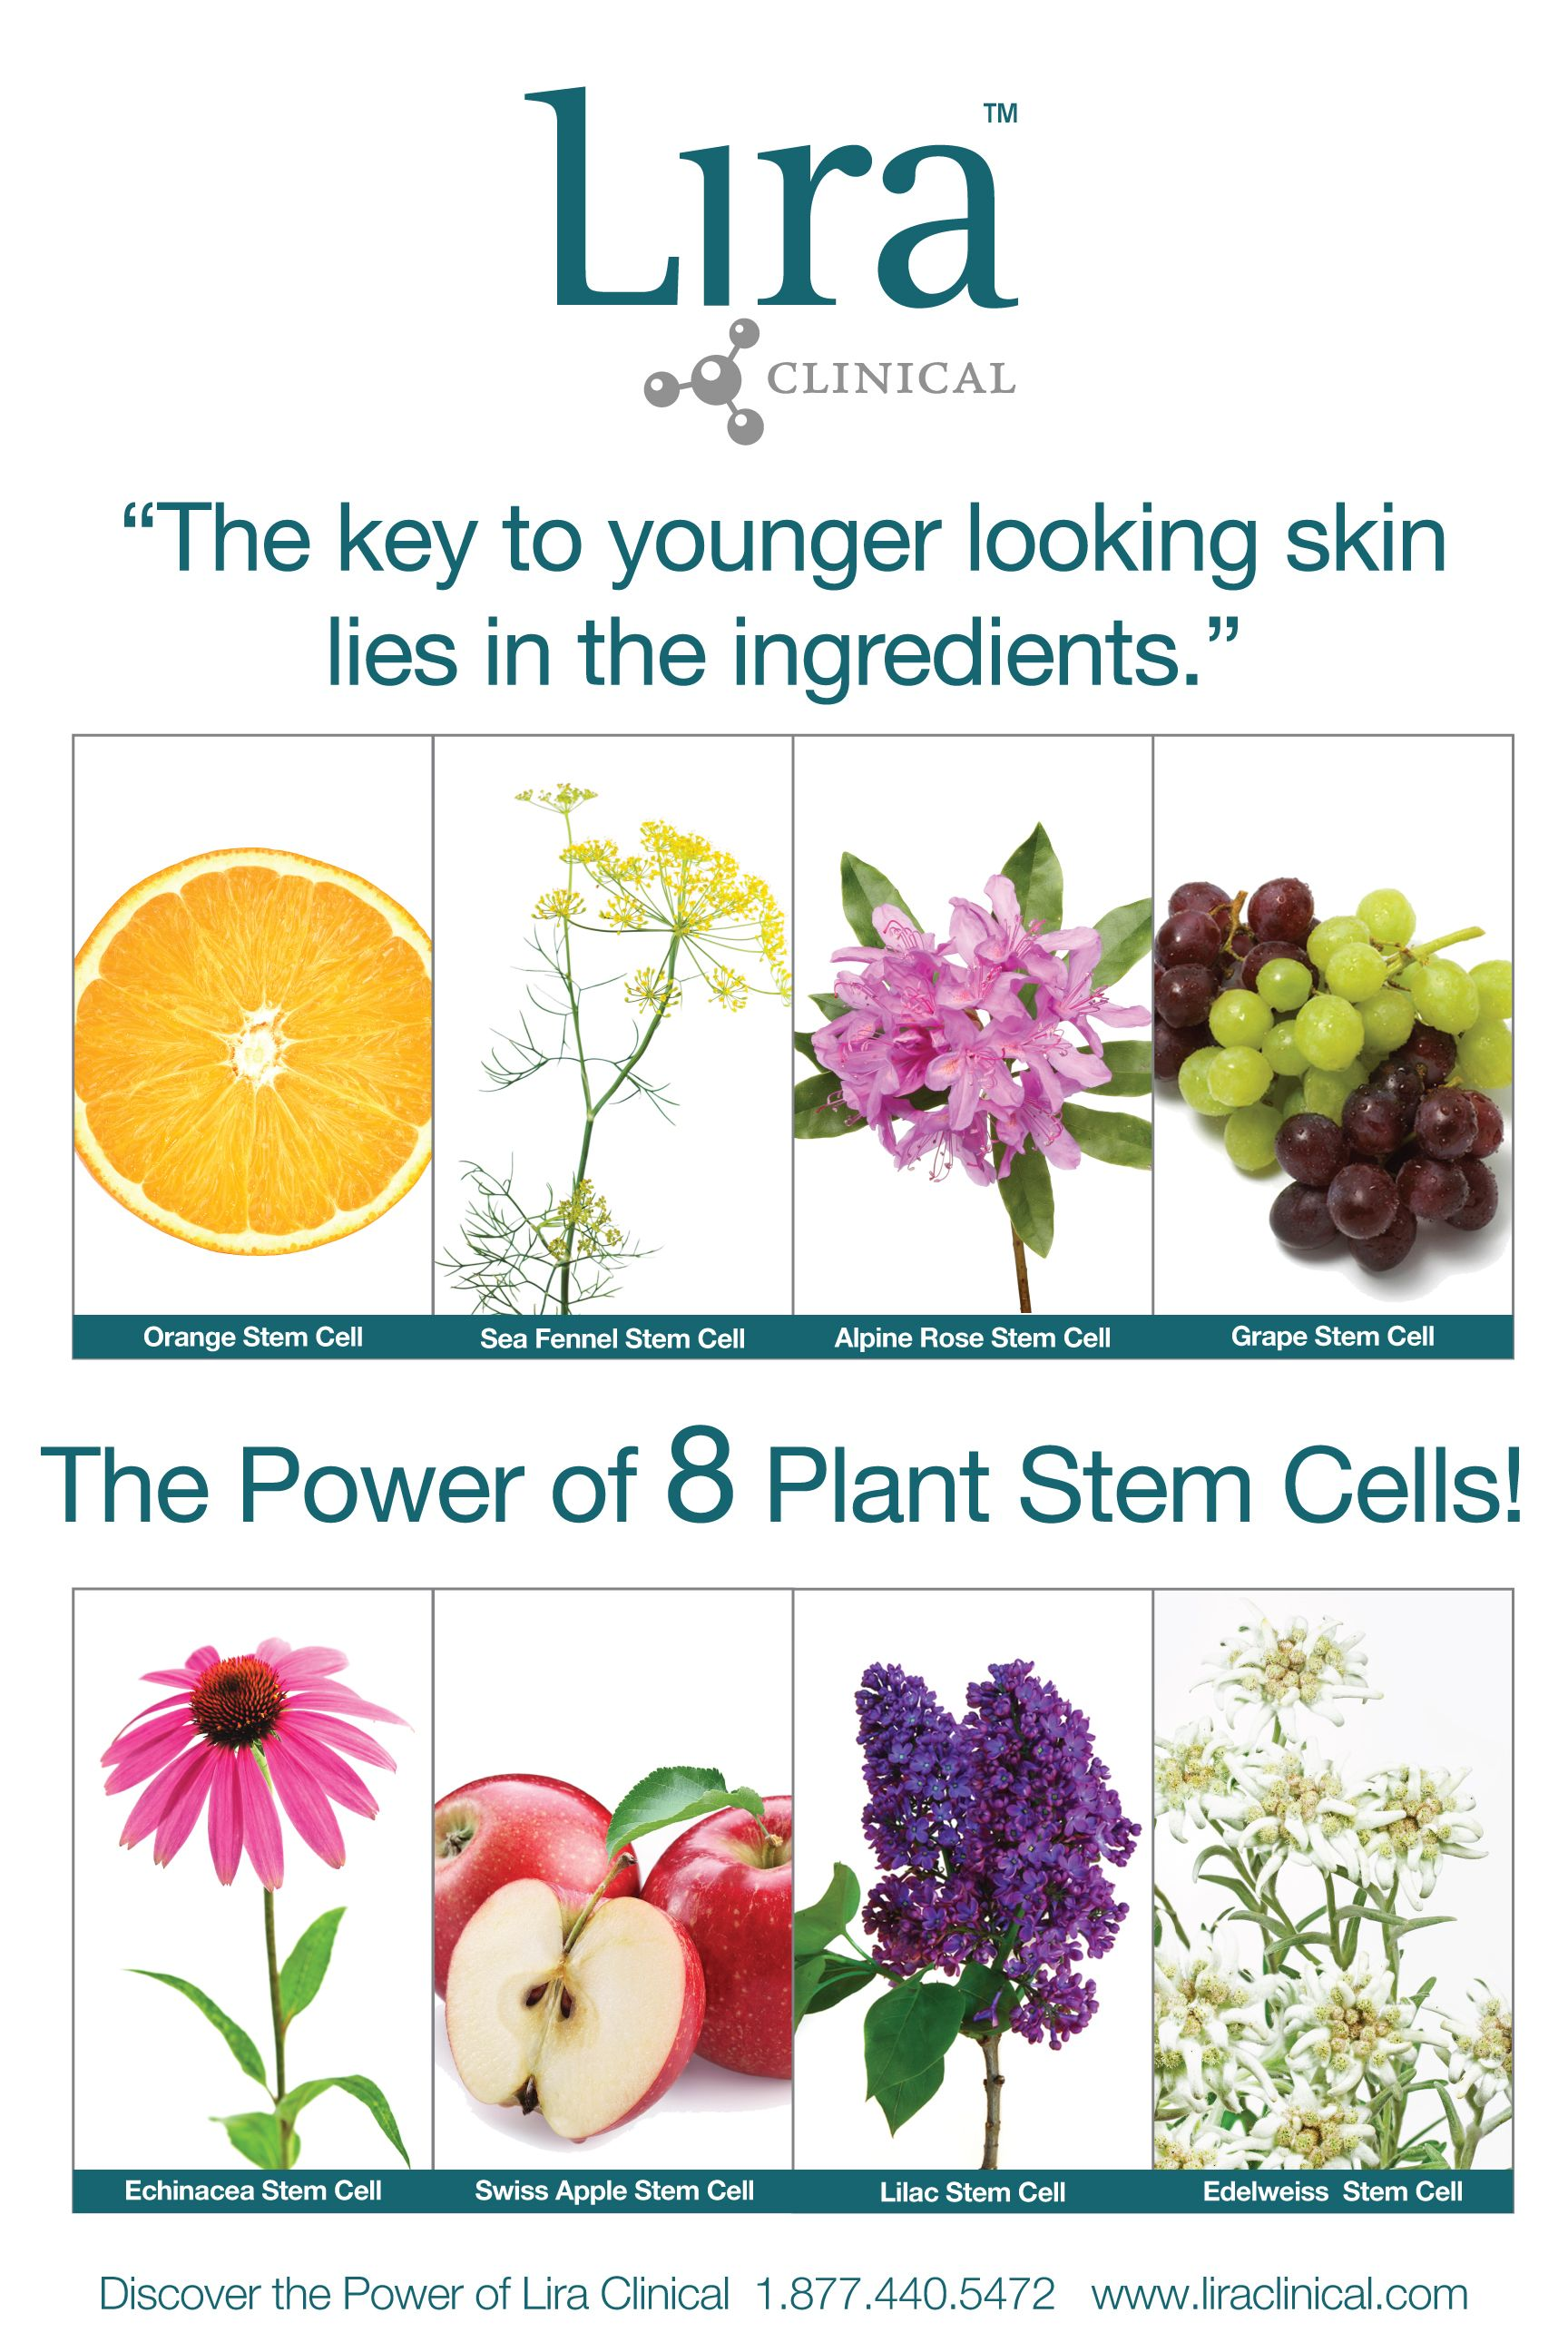 The Power Of 8 Lira Clinical Uses 8 Different Types Of Plant Stem Cells In Their Product Line Plant Stem Cell Rose Stem Cell Skin Care Clinic